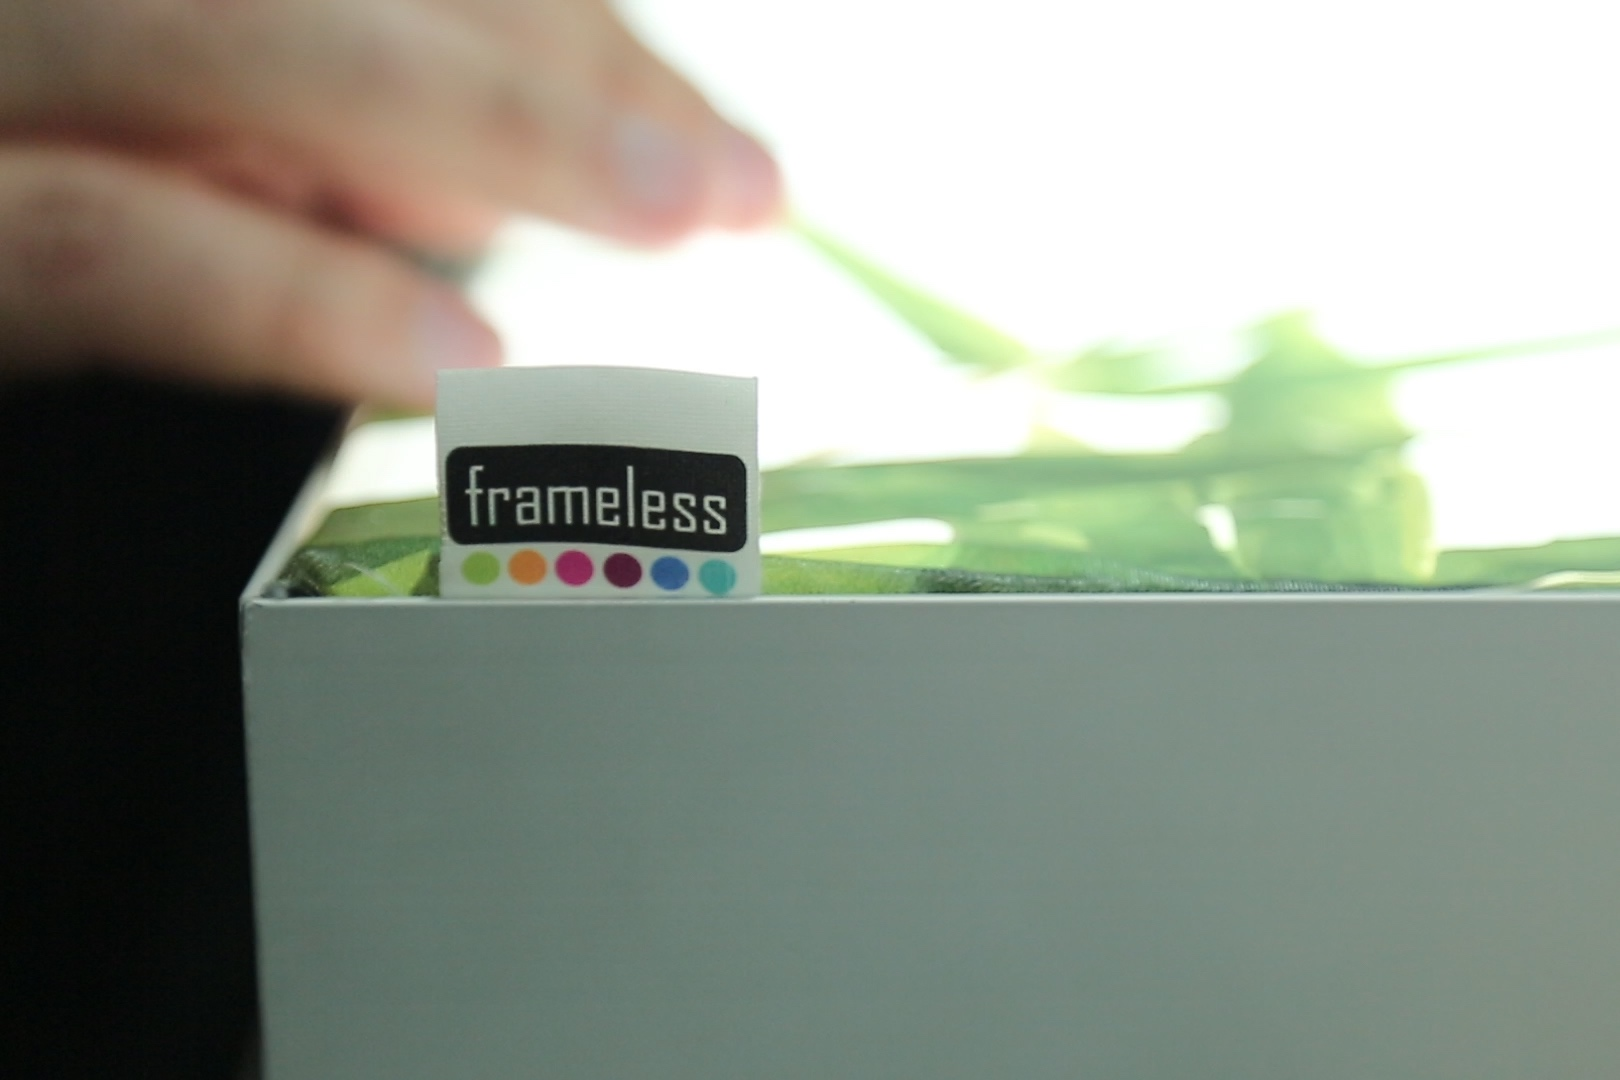 Frameless Lightbox - Frameless® Lightboxes can be fabricated in virtually any size, the bigger the better.